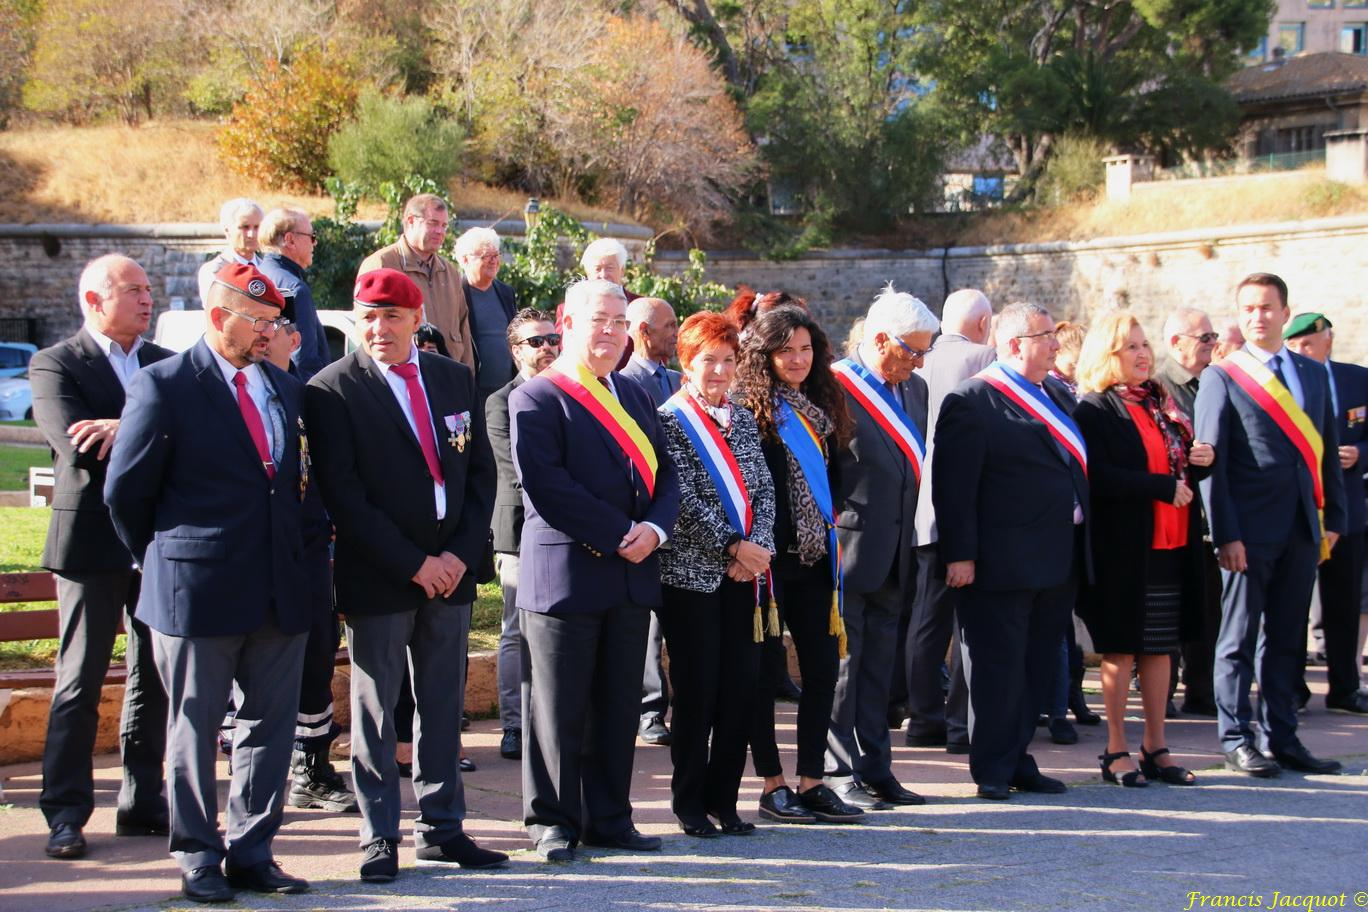 [Association anciens marins] AGASM section RUBIS (TOULON) - Page 6 8891395407